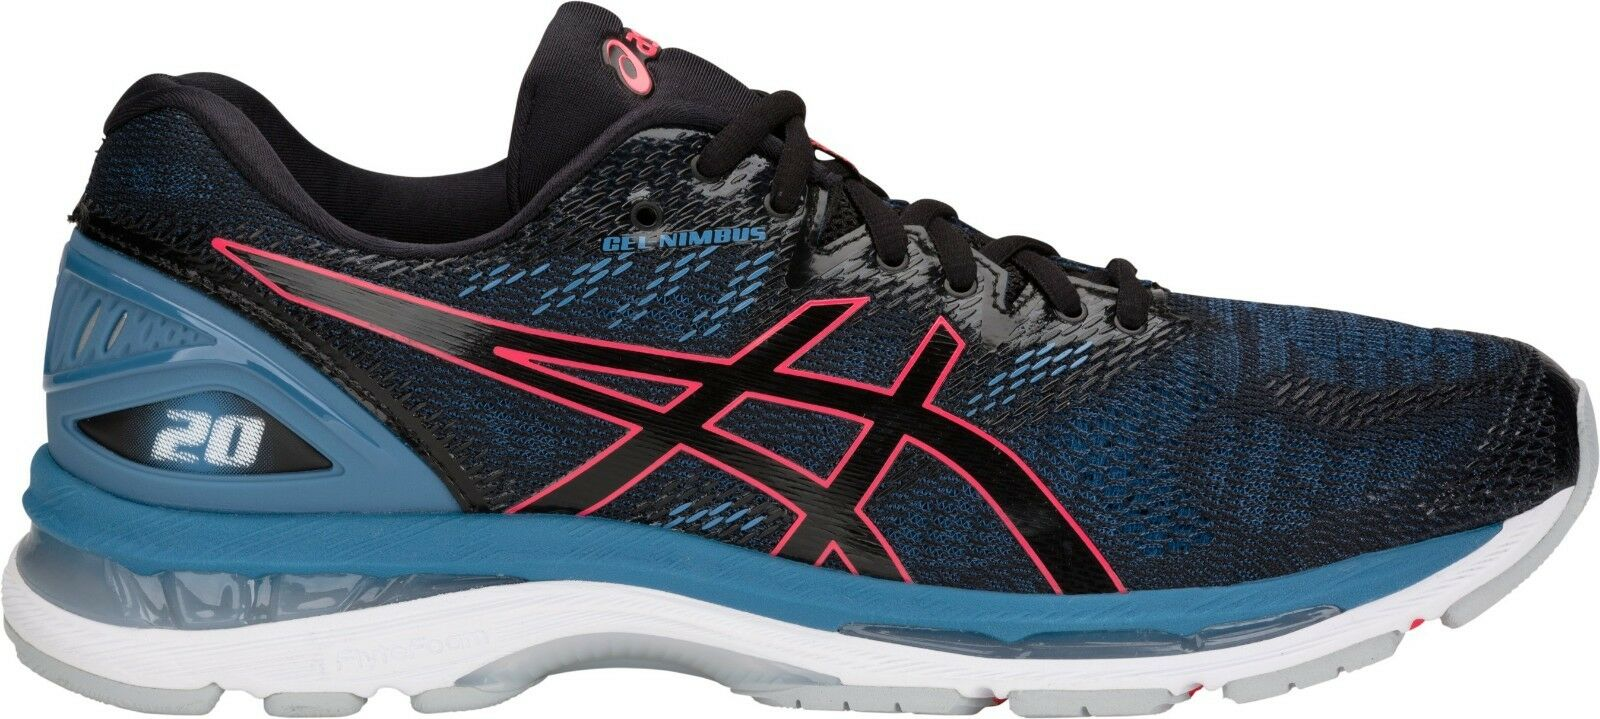 newest ac2a8 878df BARGAIN    Asics Asics Asics Gel Nimbus 20 Mens Running Shoes (D